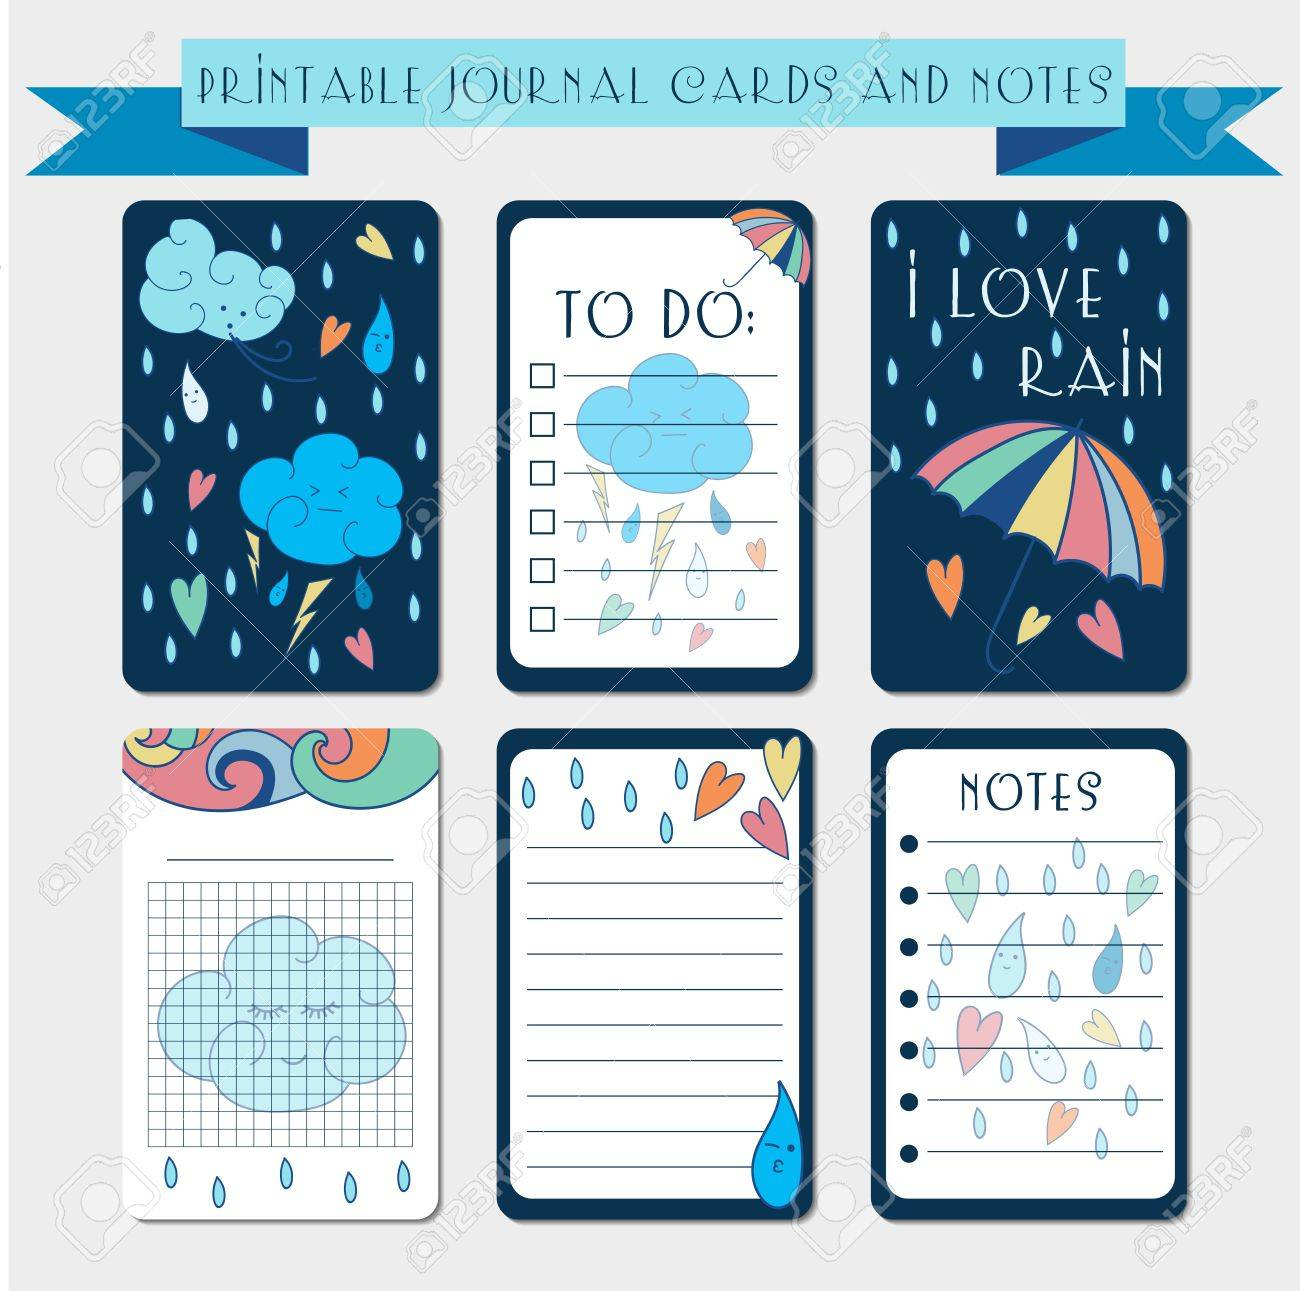 graphic regarding Free Printable Journal Cards referred to as Printable magazine playing cards, labels, with autumn examples